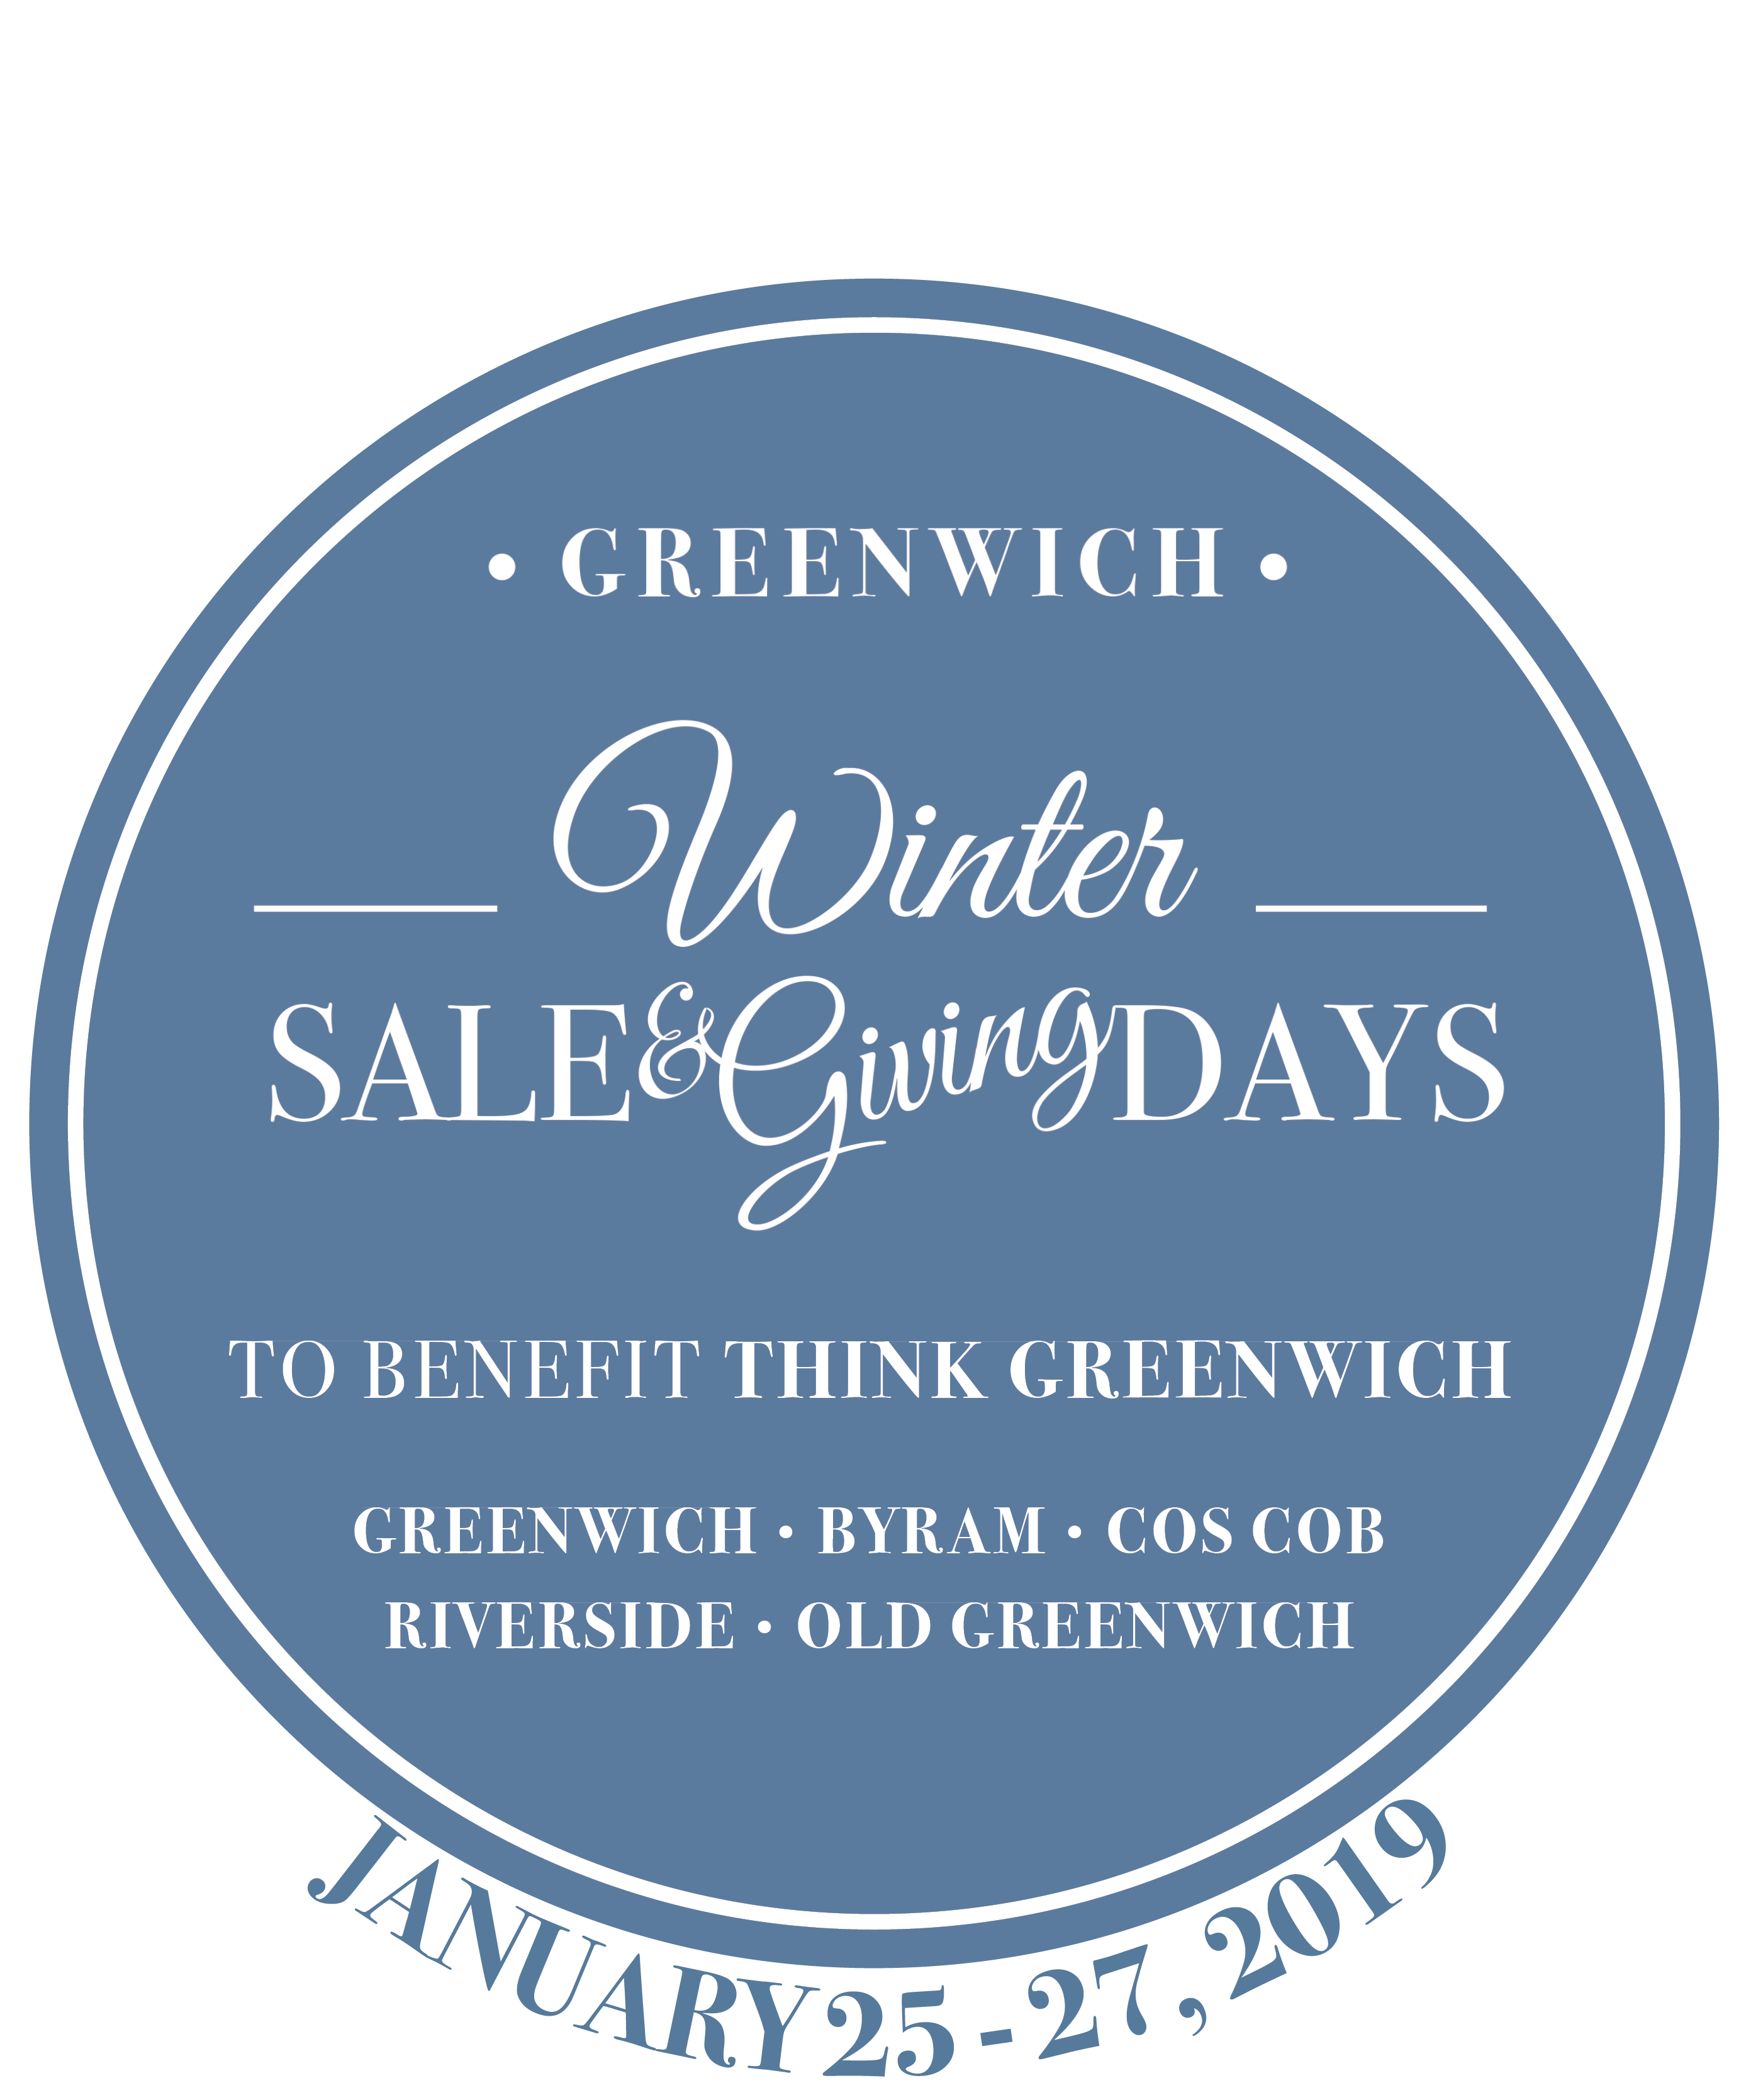 Greenwich Winter Sale   Giving Days to benefit Think Greenwich ... f2c7f83c32c